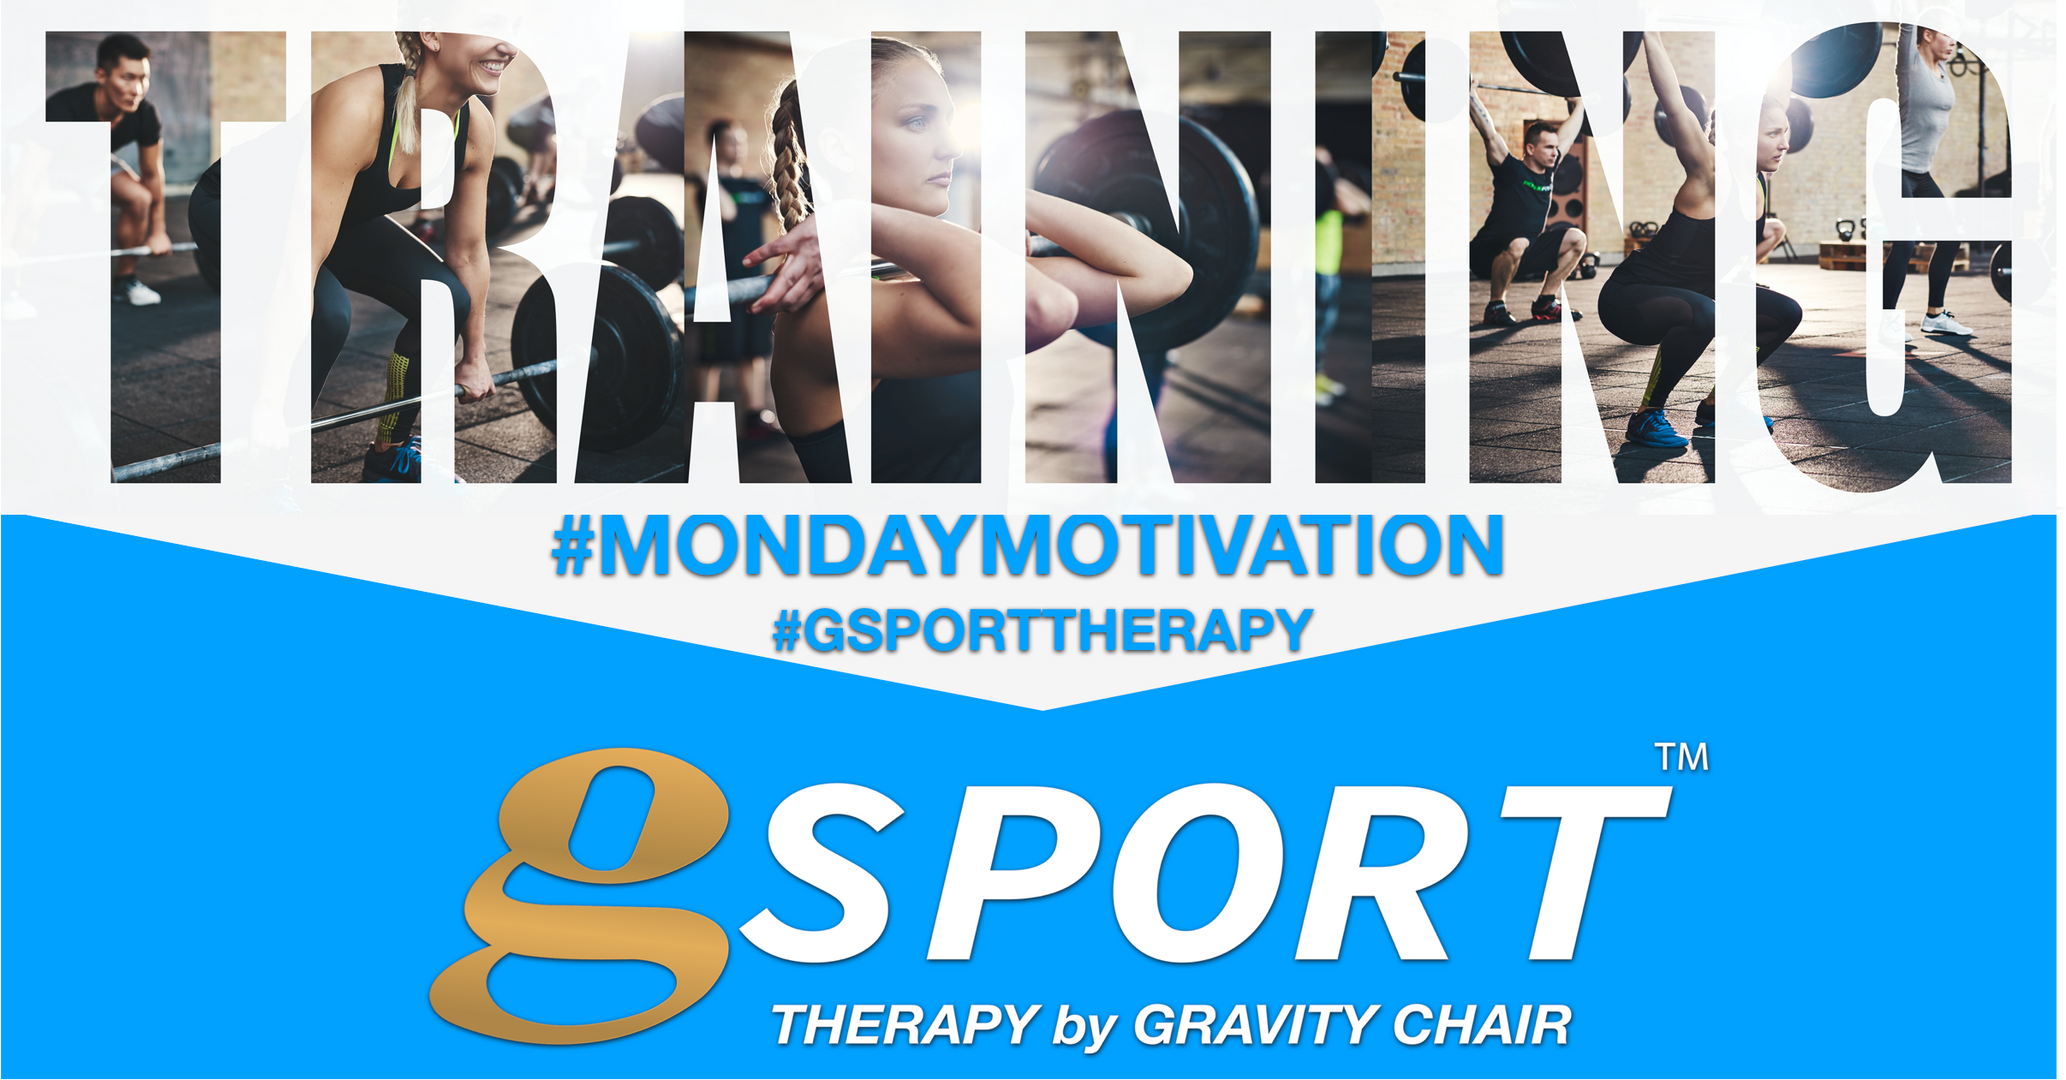 GSPORT_mondayMotivation04.png